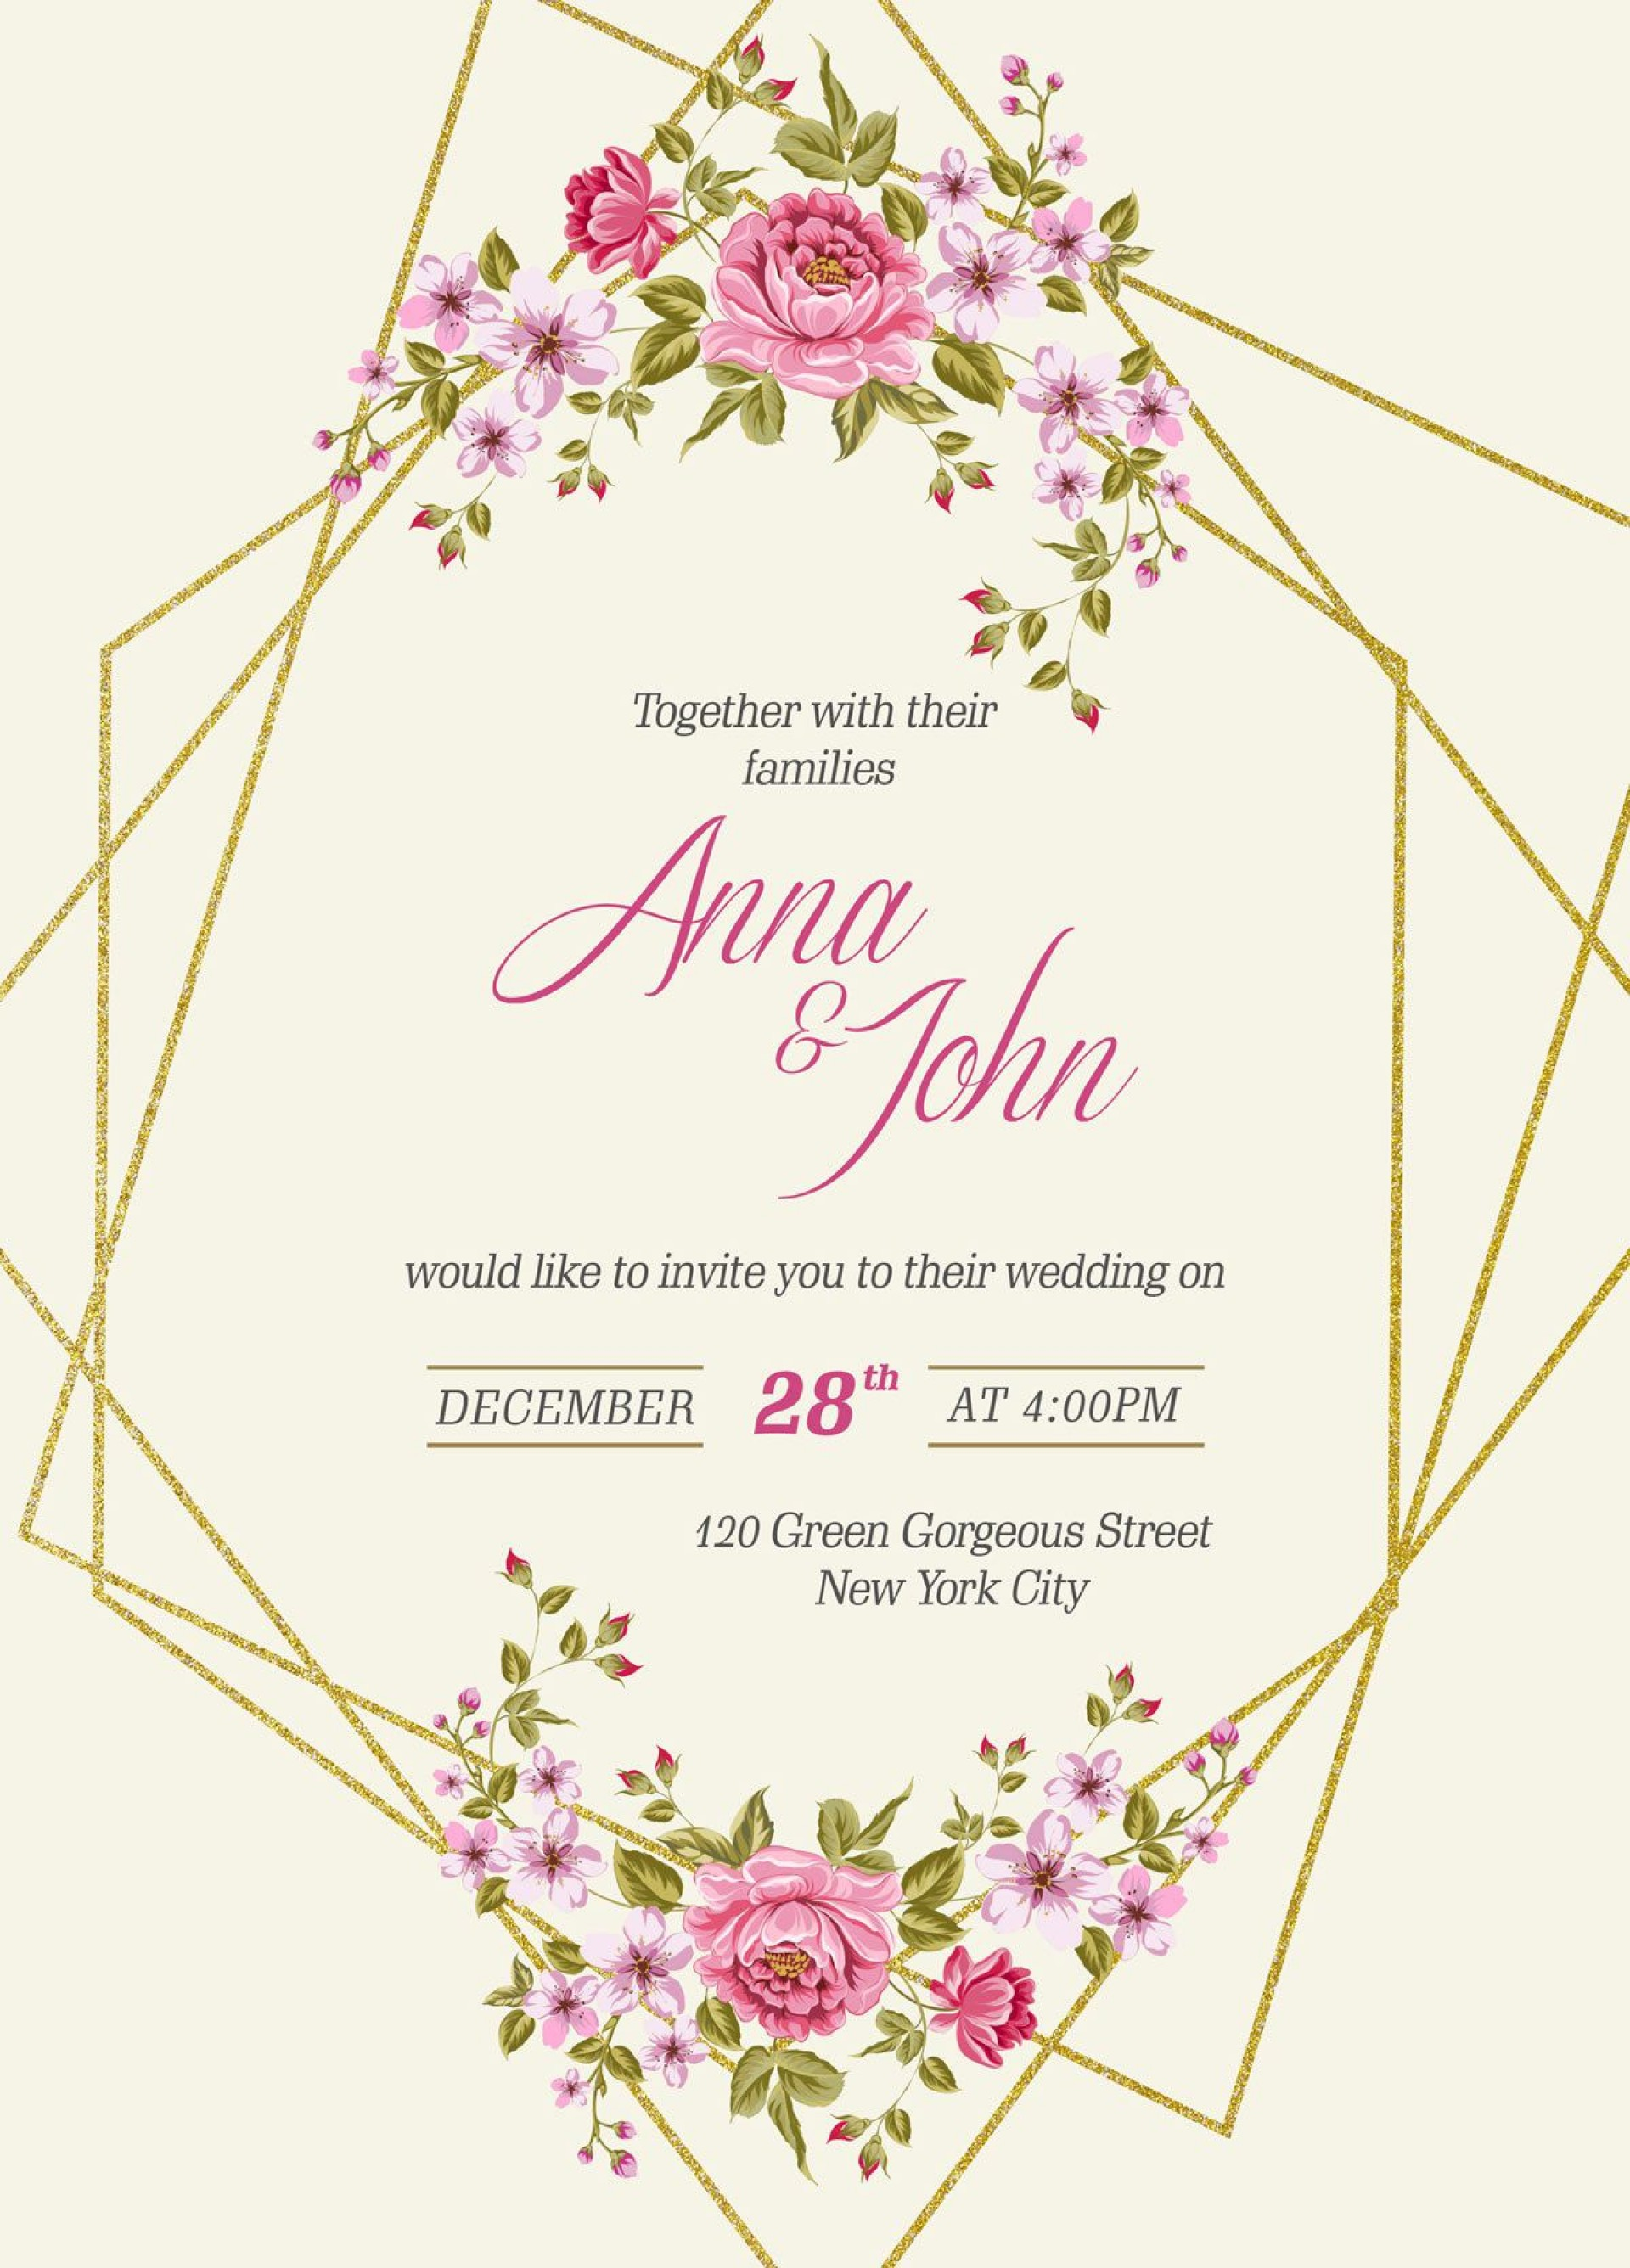 007 Outstanding Free Download Invitation Card Template Psd Image  Indian Wedding1920